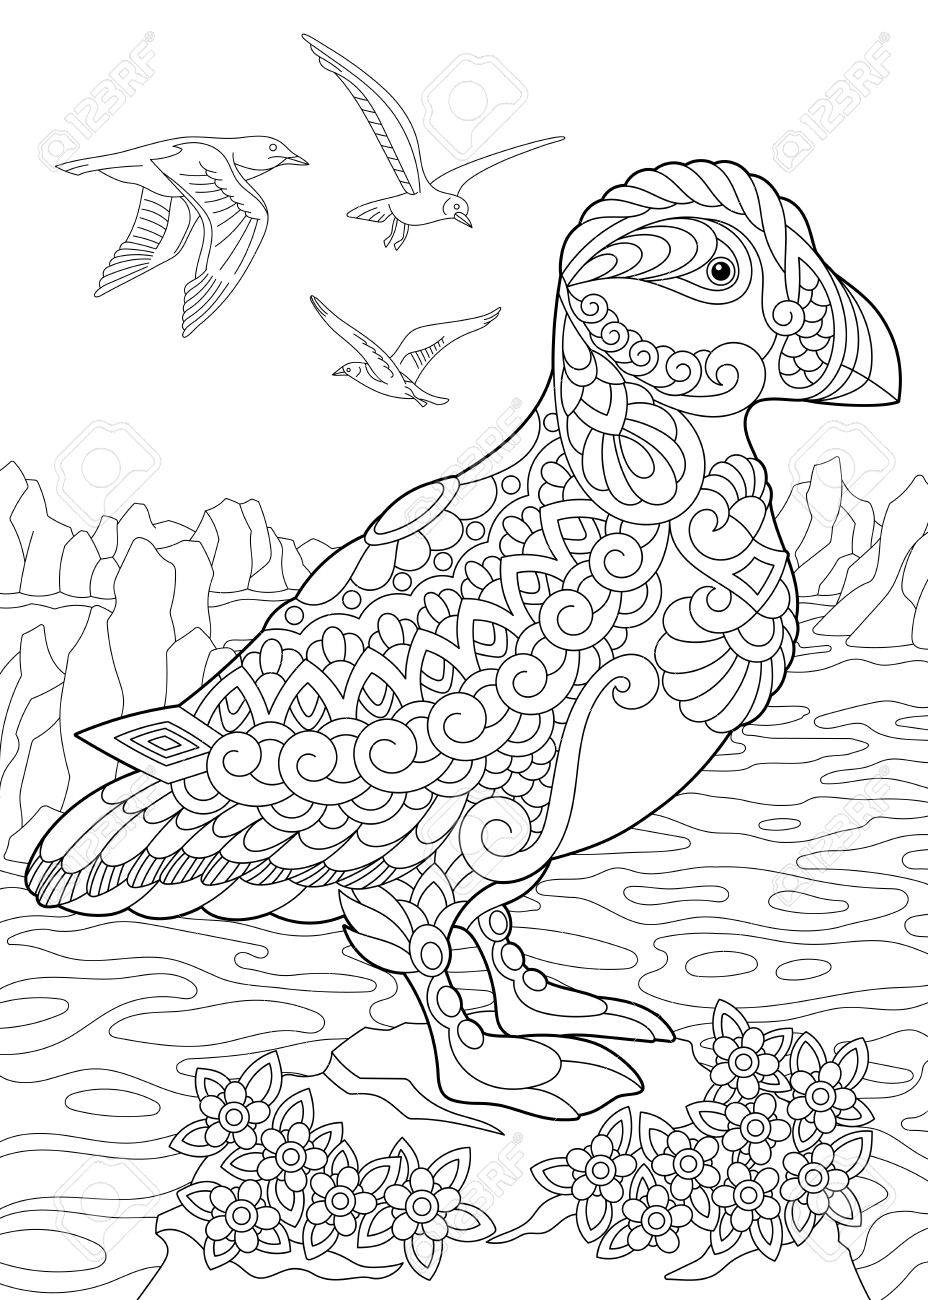 Coloring Page Of Puffin, A Hole-nesting Auk (seabird) Of Northern ...